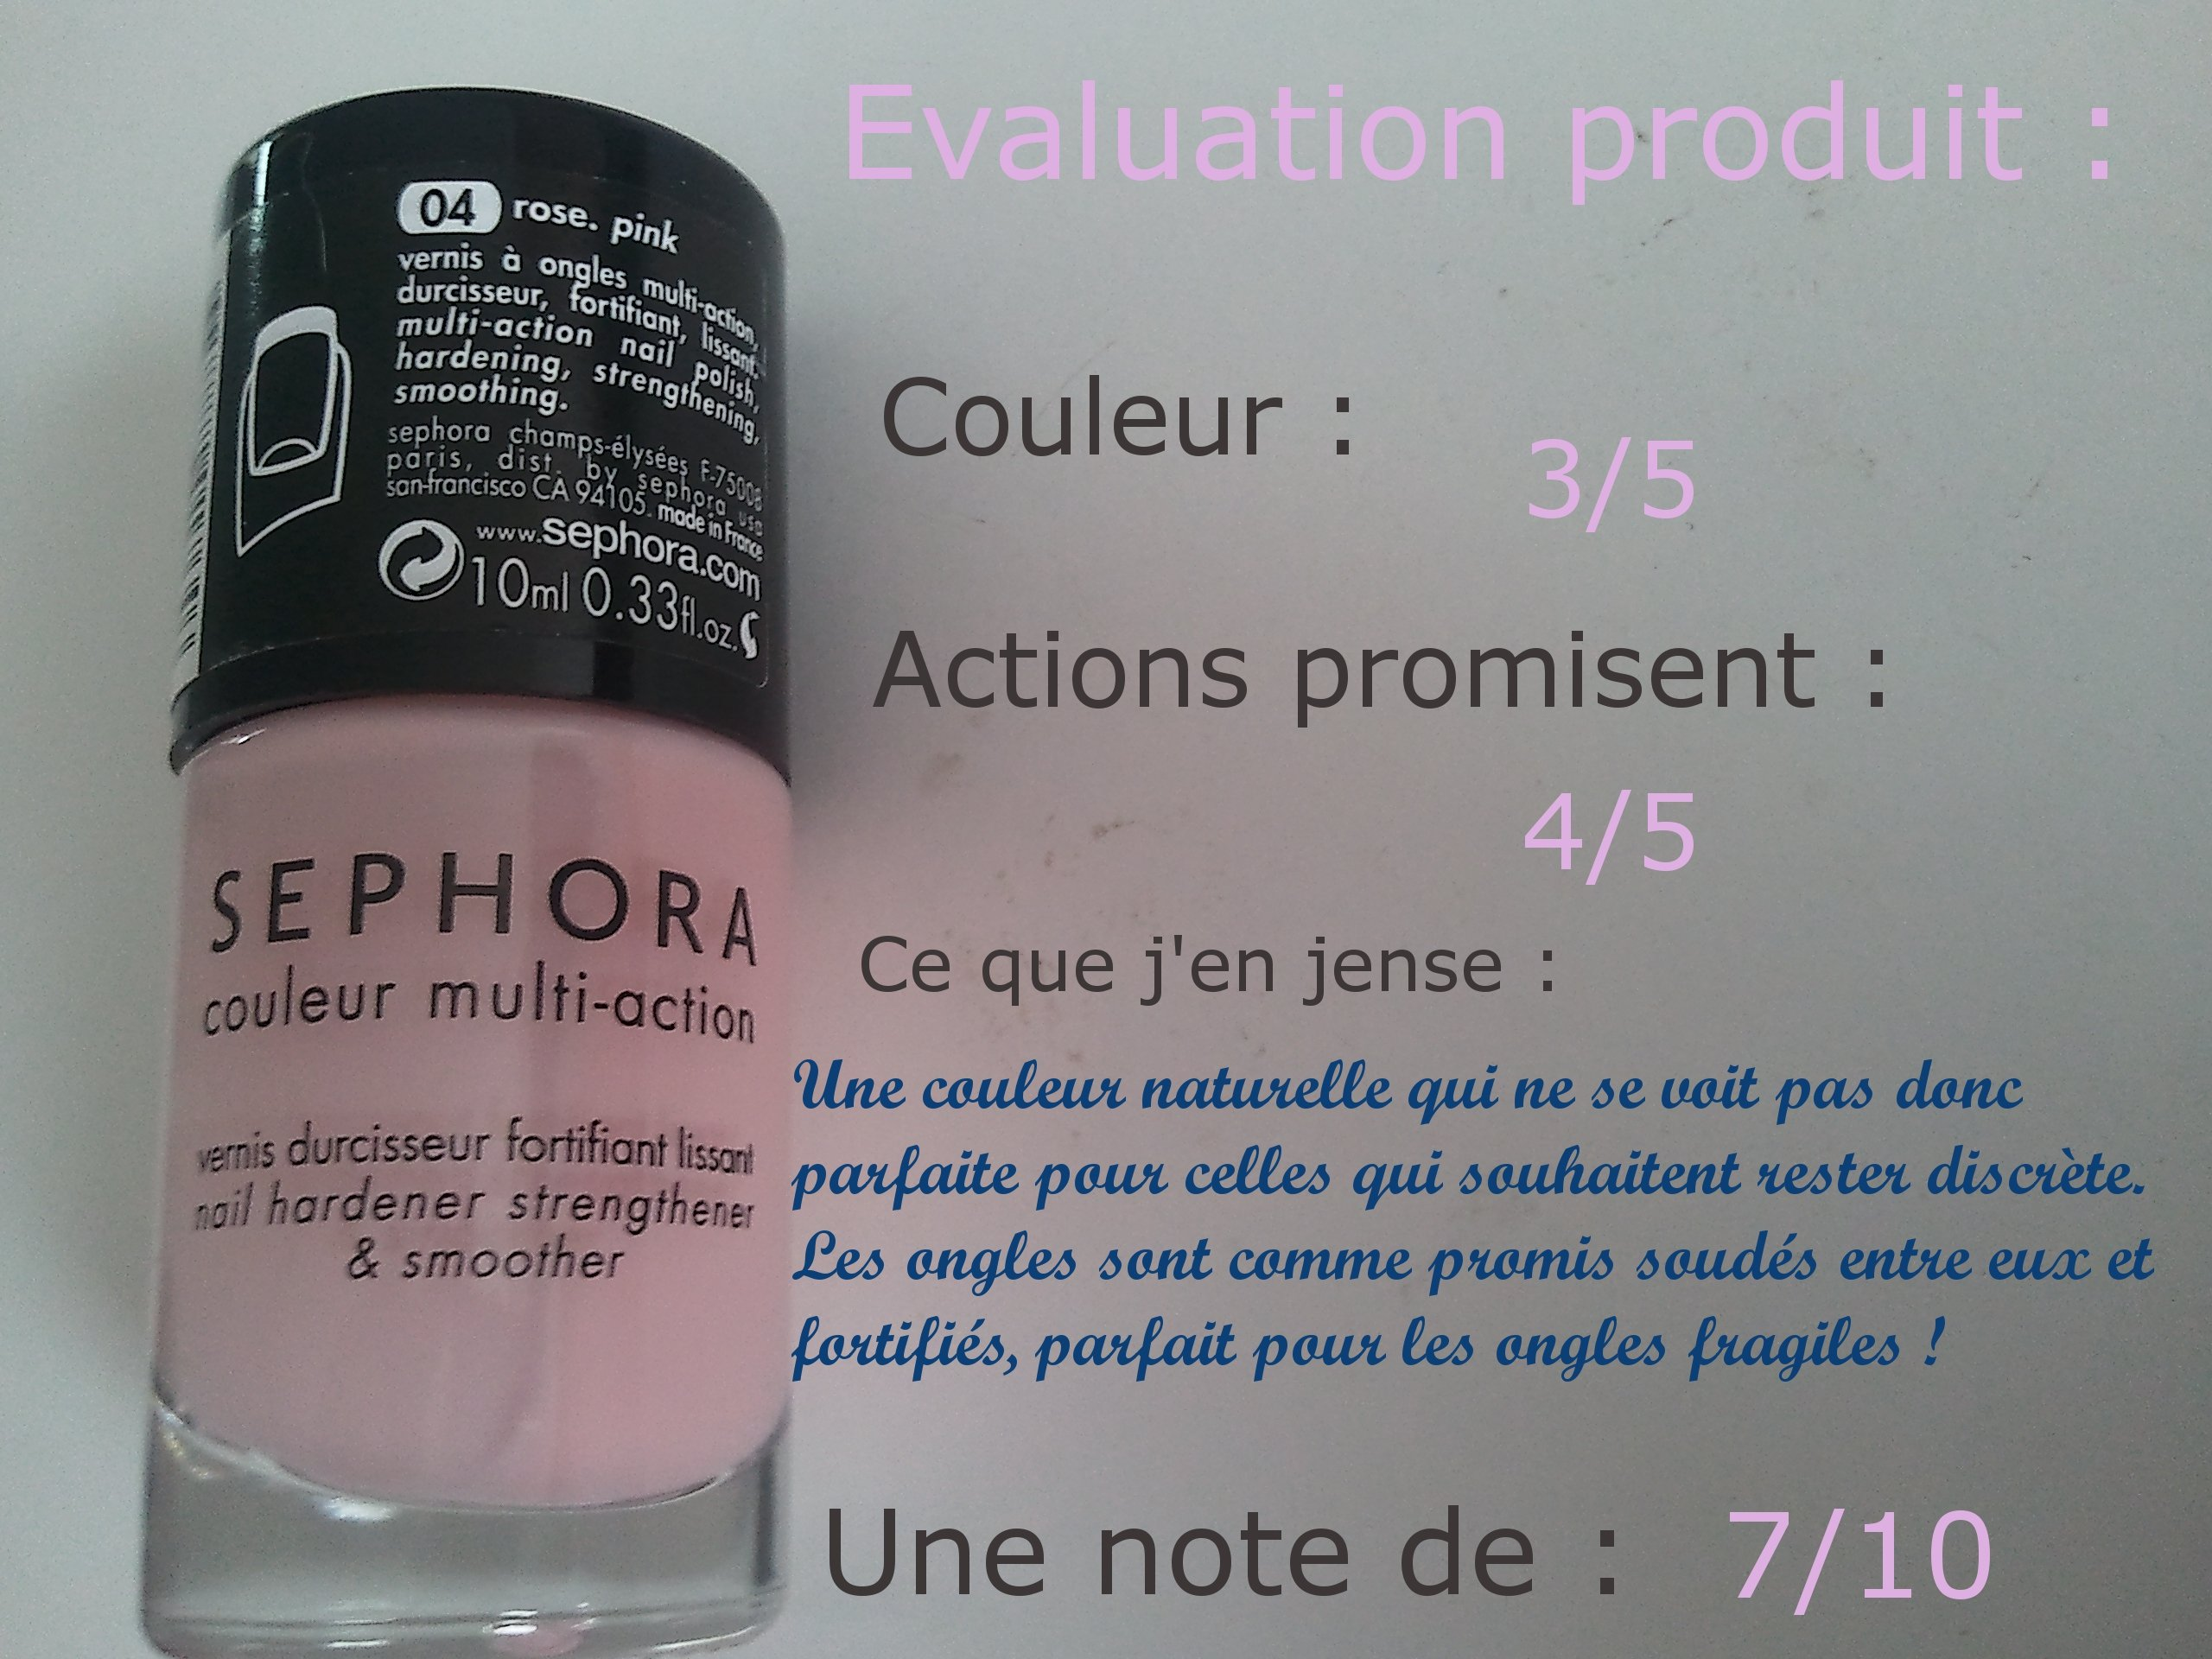 Vernis Sephora, rose, couleur multi-action à 6.50€